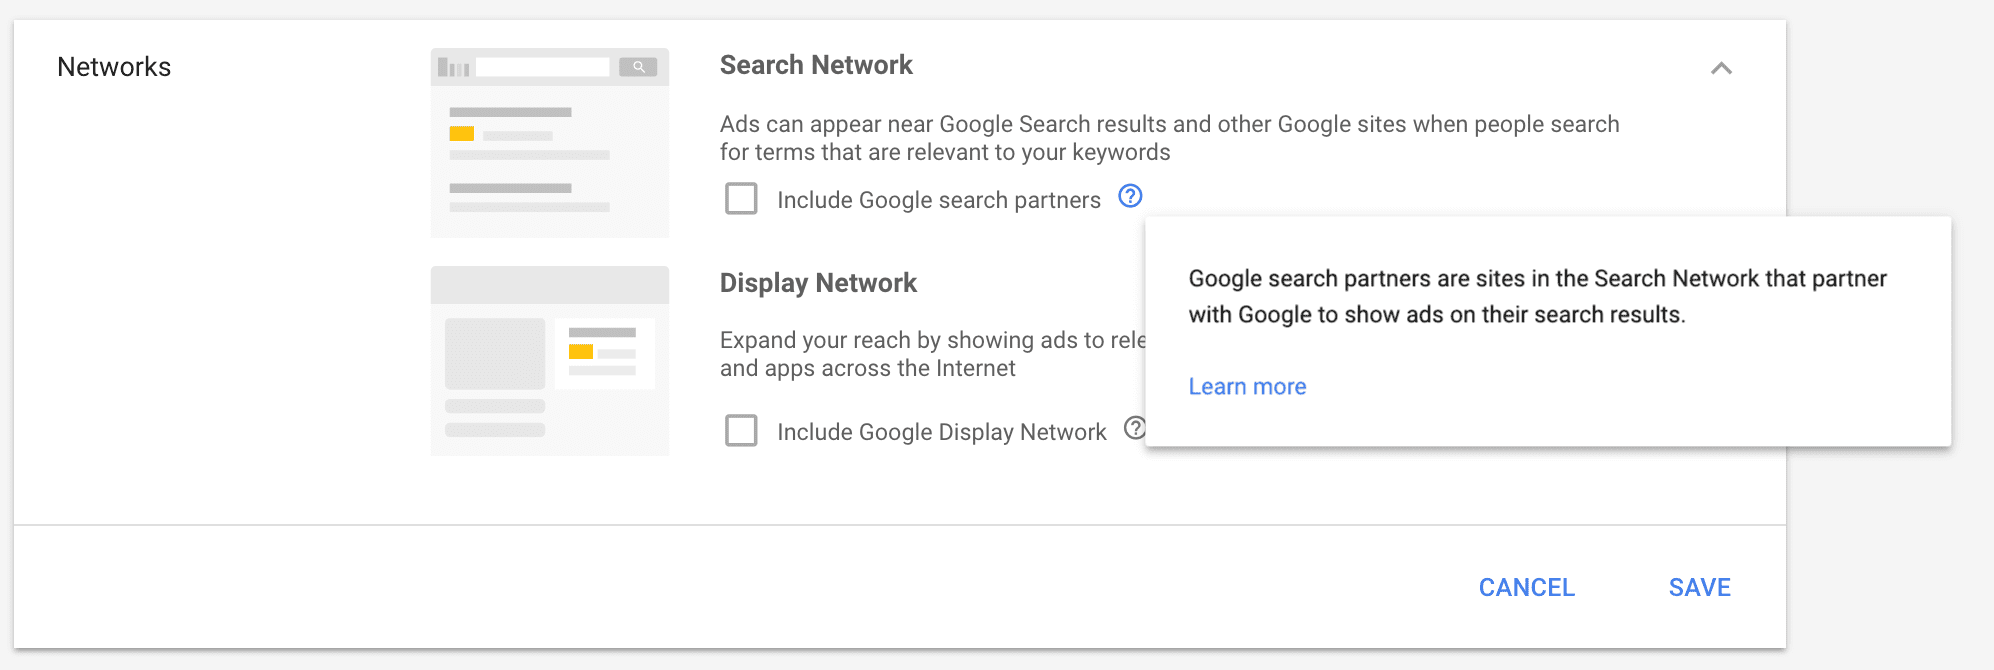 Search Network and Display network